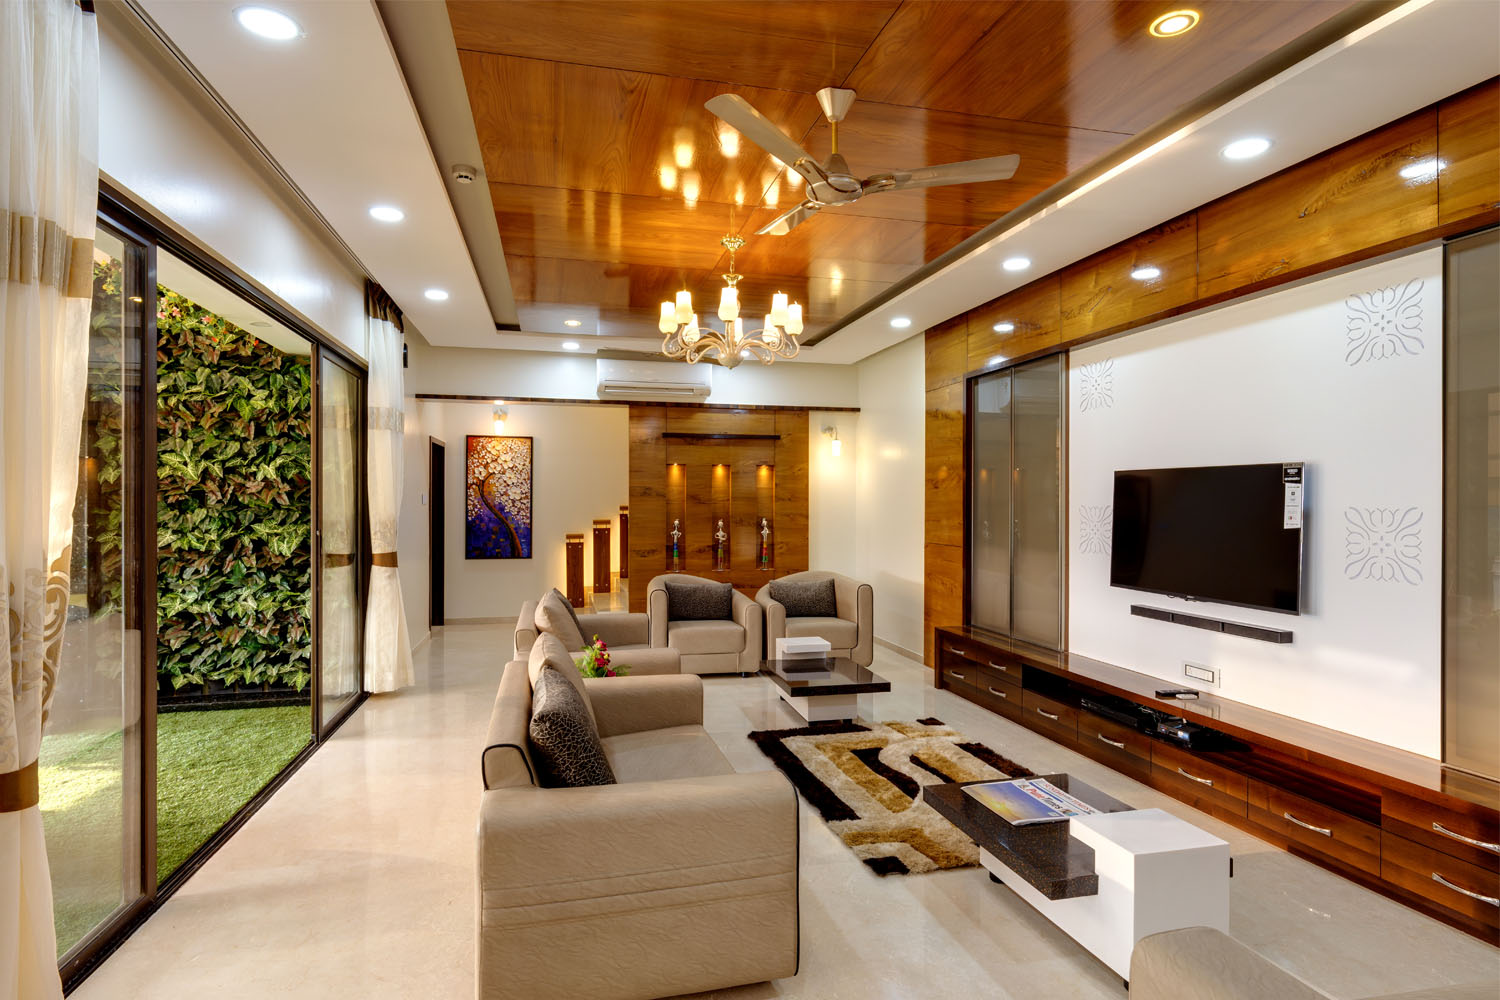 Best interior designer pune nerlekar interior designing for Indoor design ideas indian